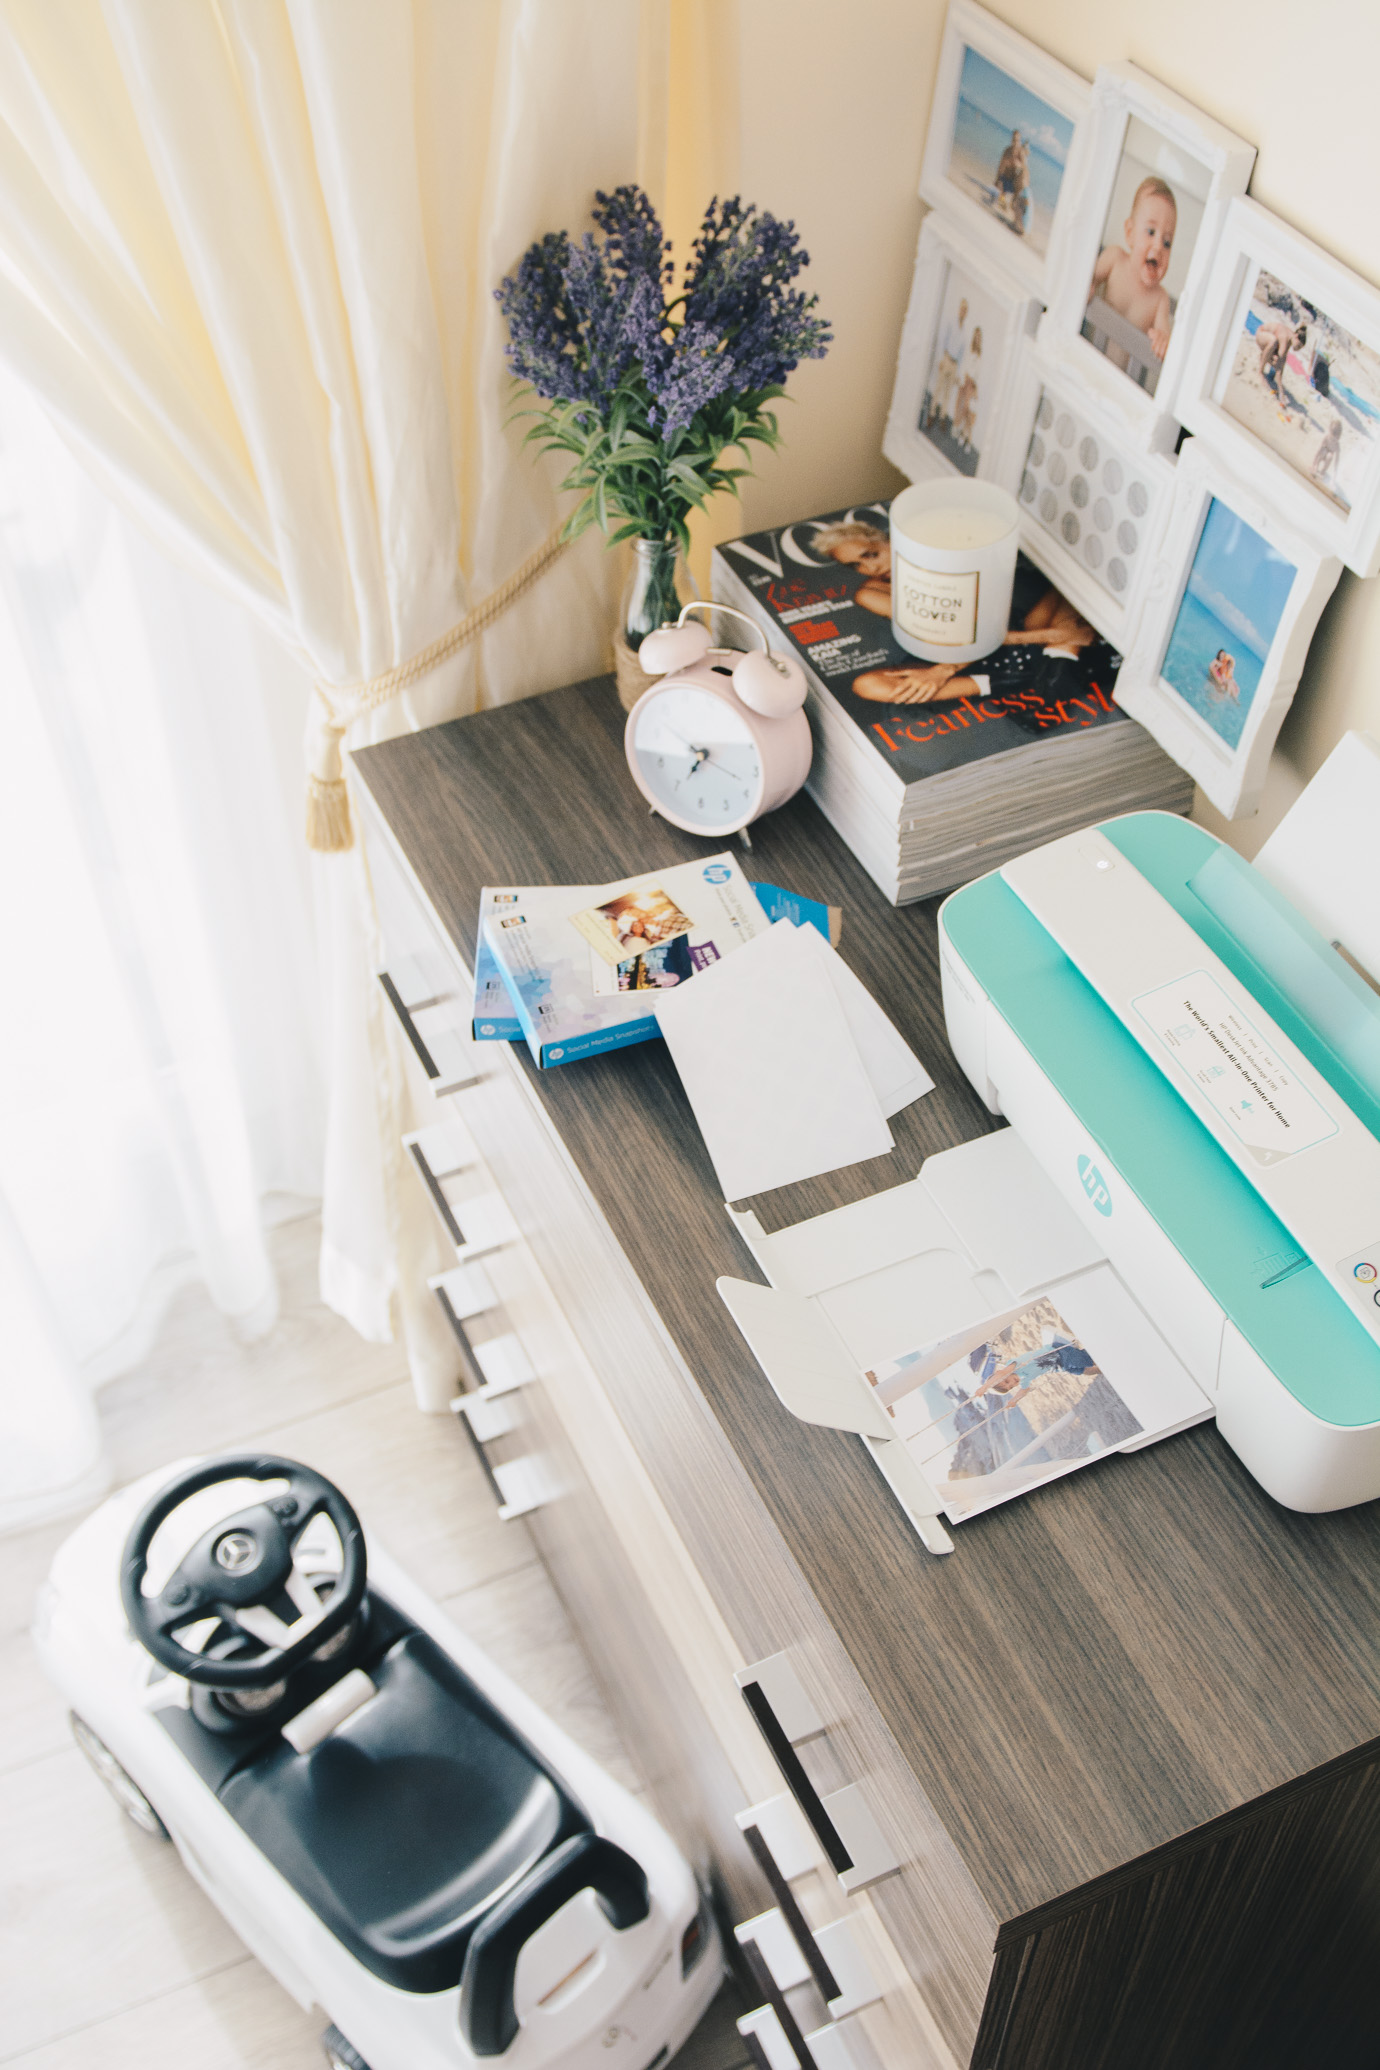 The world smallest all in one printer for home